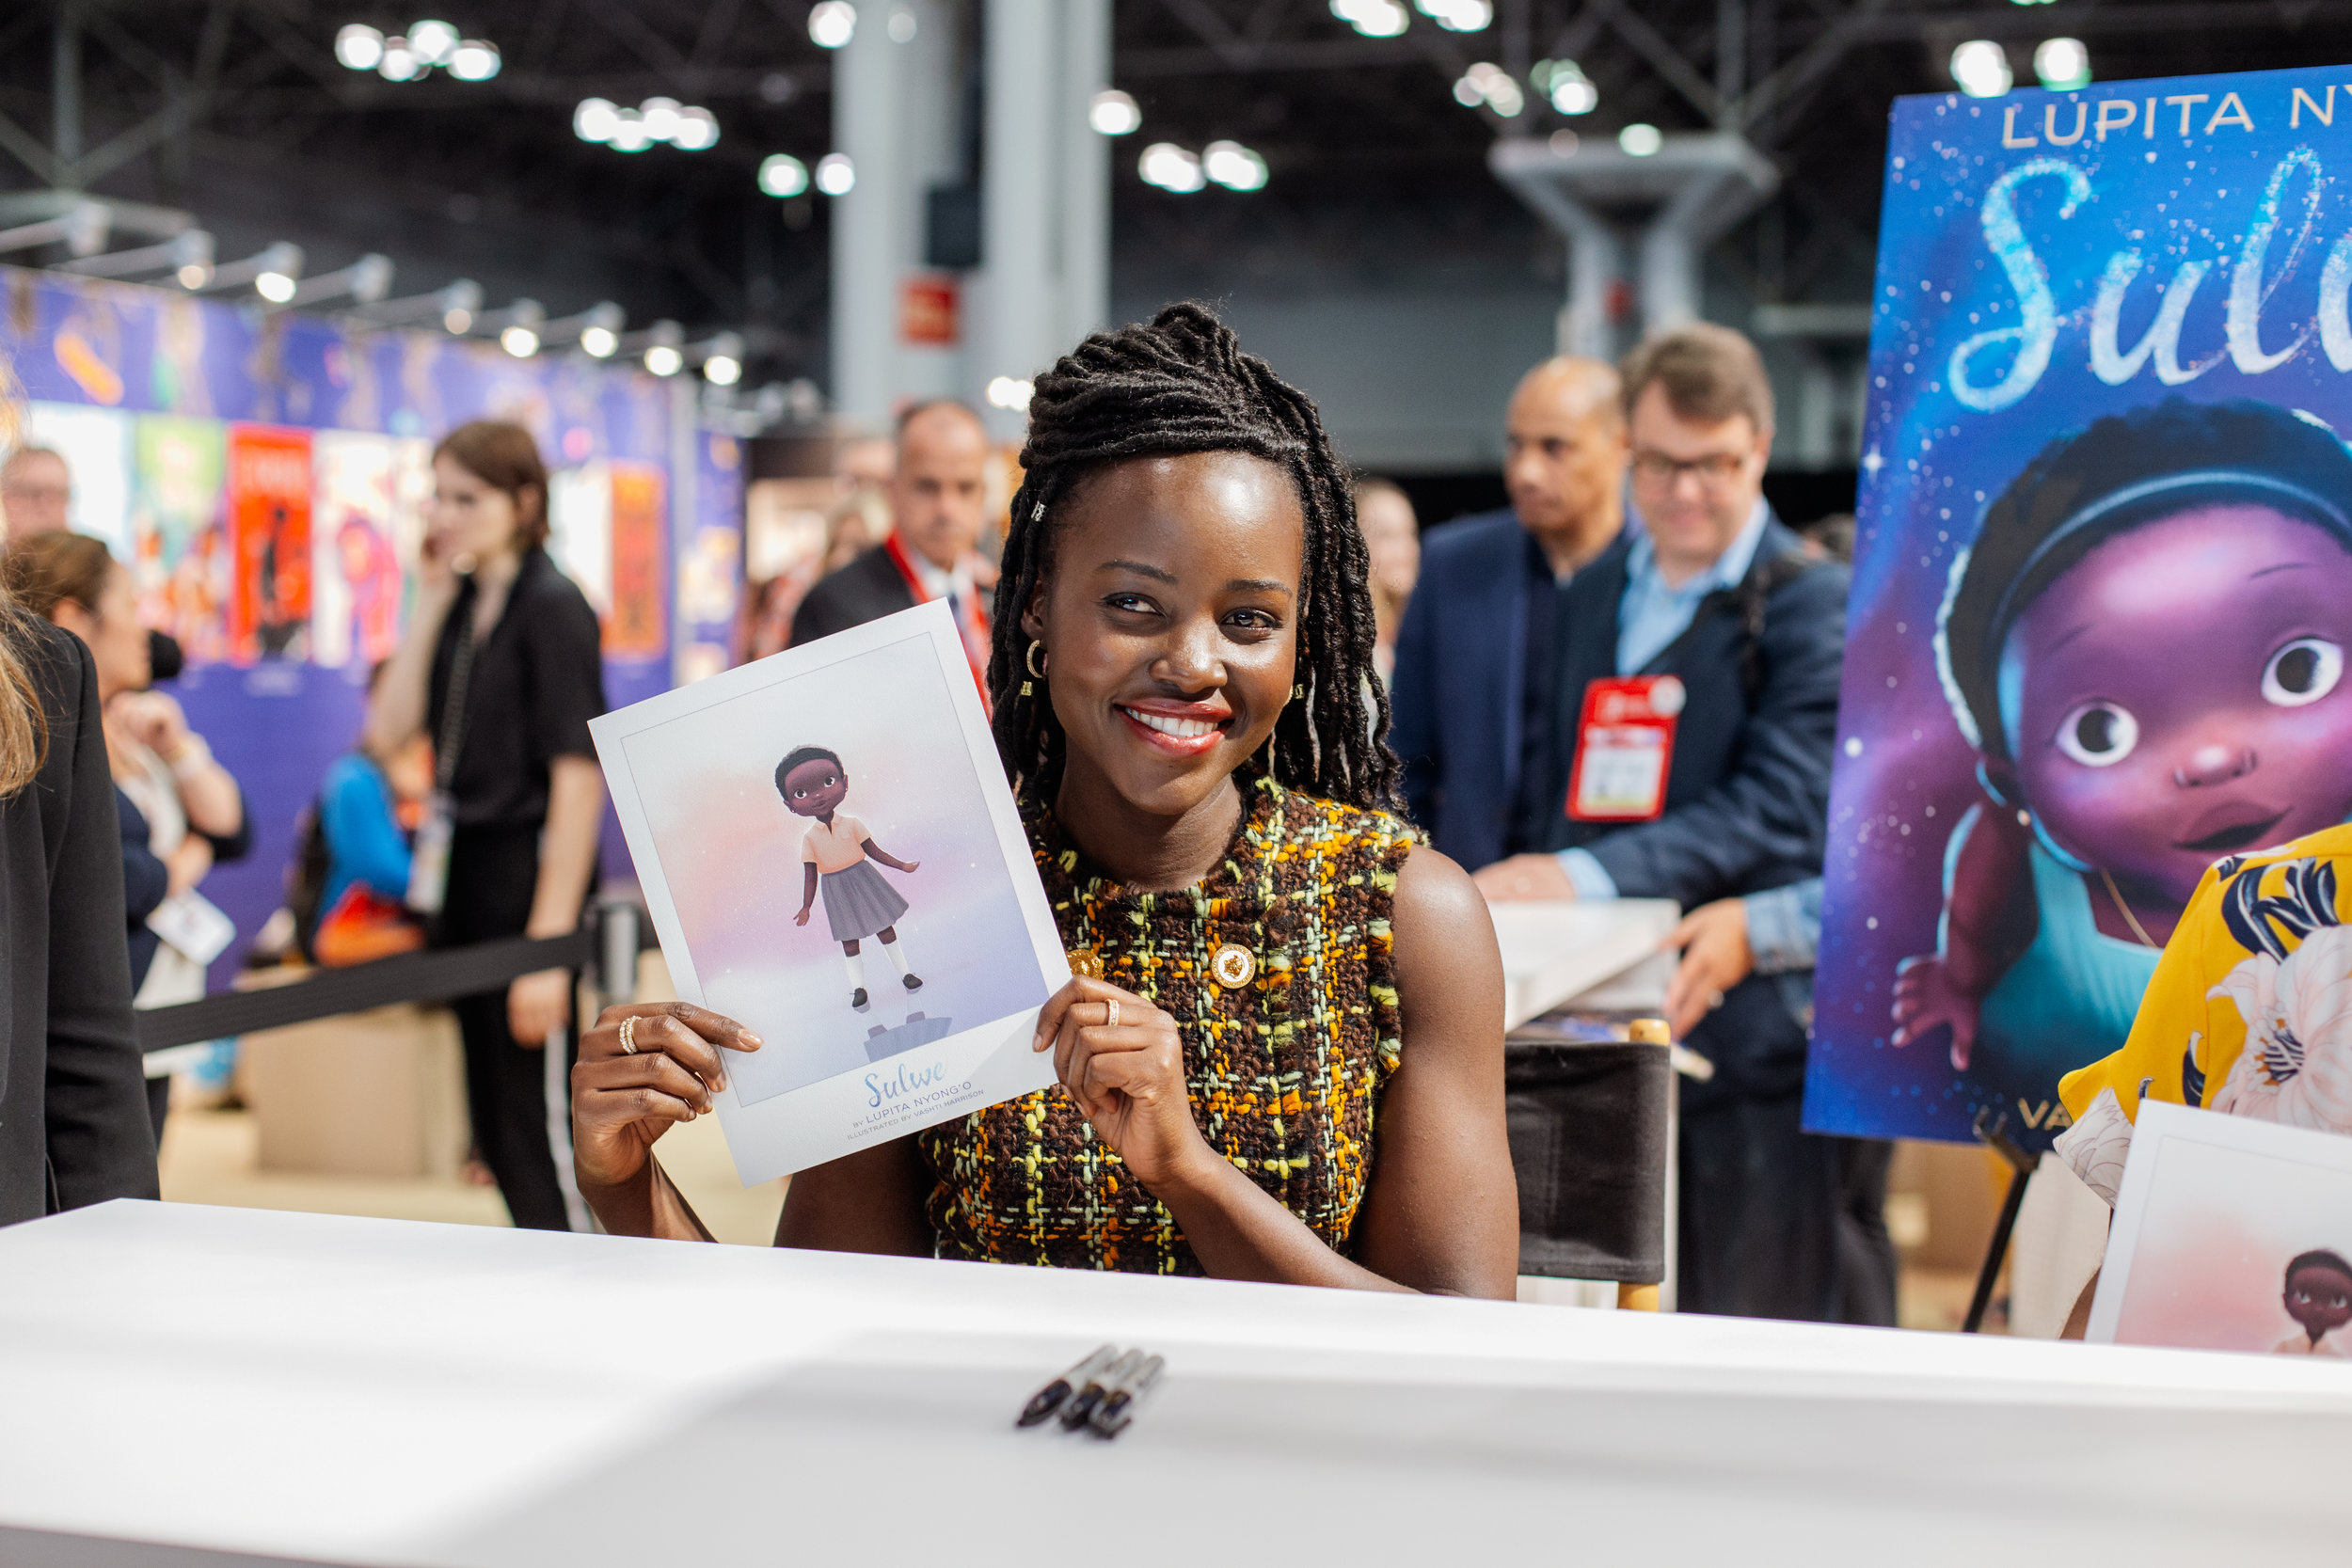 whitley-isa-portretfotograaf-modefotograaf-fotograaf-genk-limburg-belgie-lupita-nyong'o-bookexpo-america-2019-new-york-sulwe-simon-schuster-vashti-harrison-childrens-book-author-signing-6761.jpg